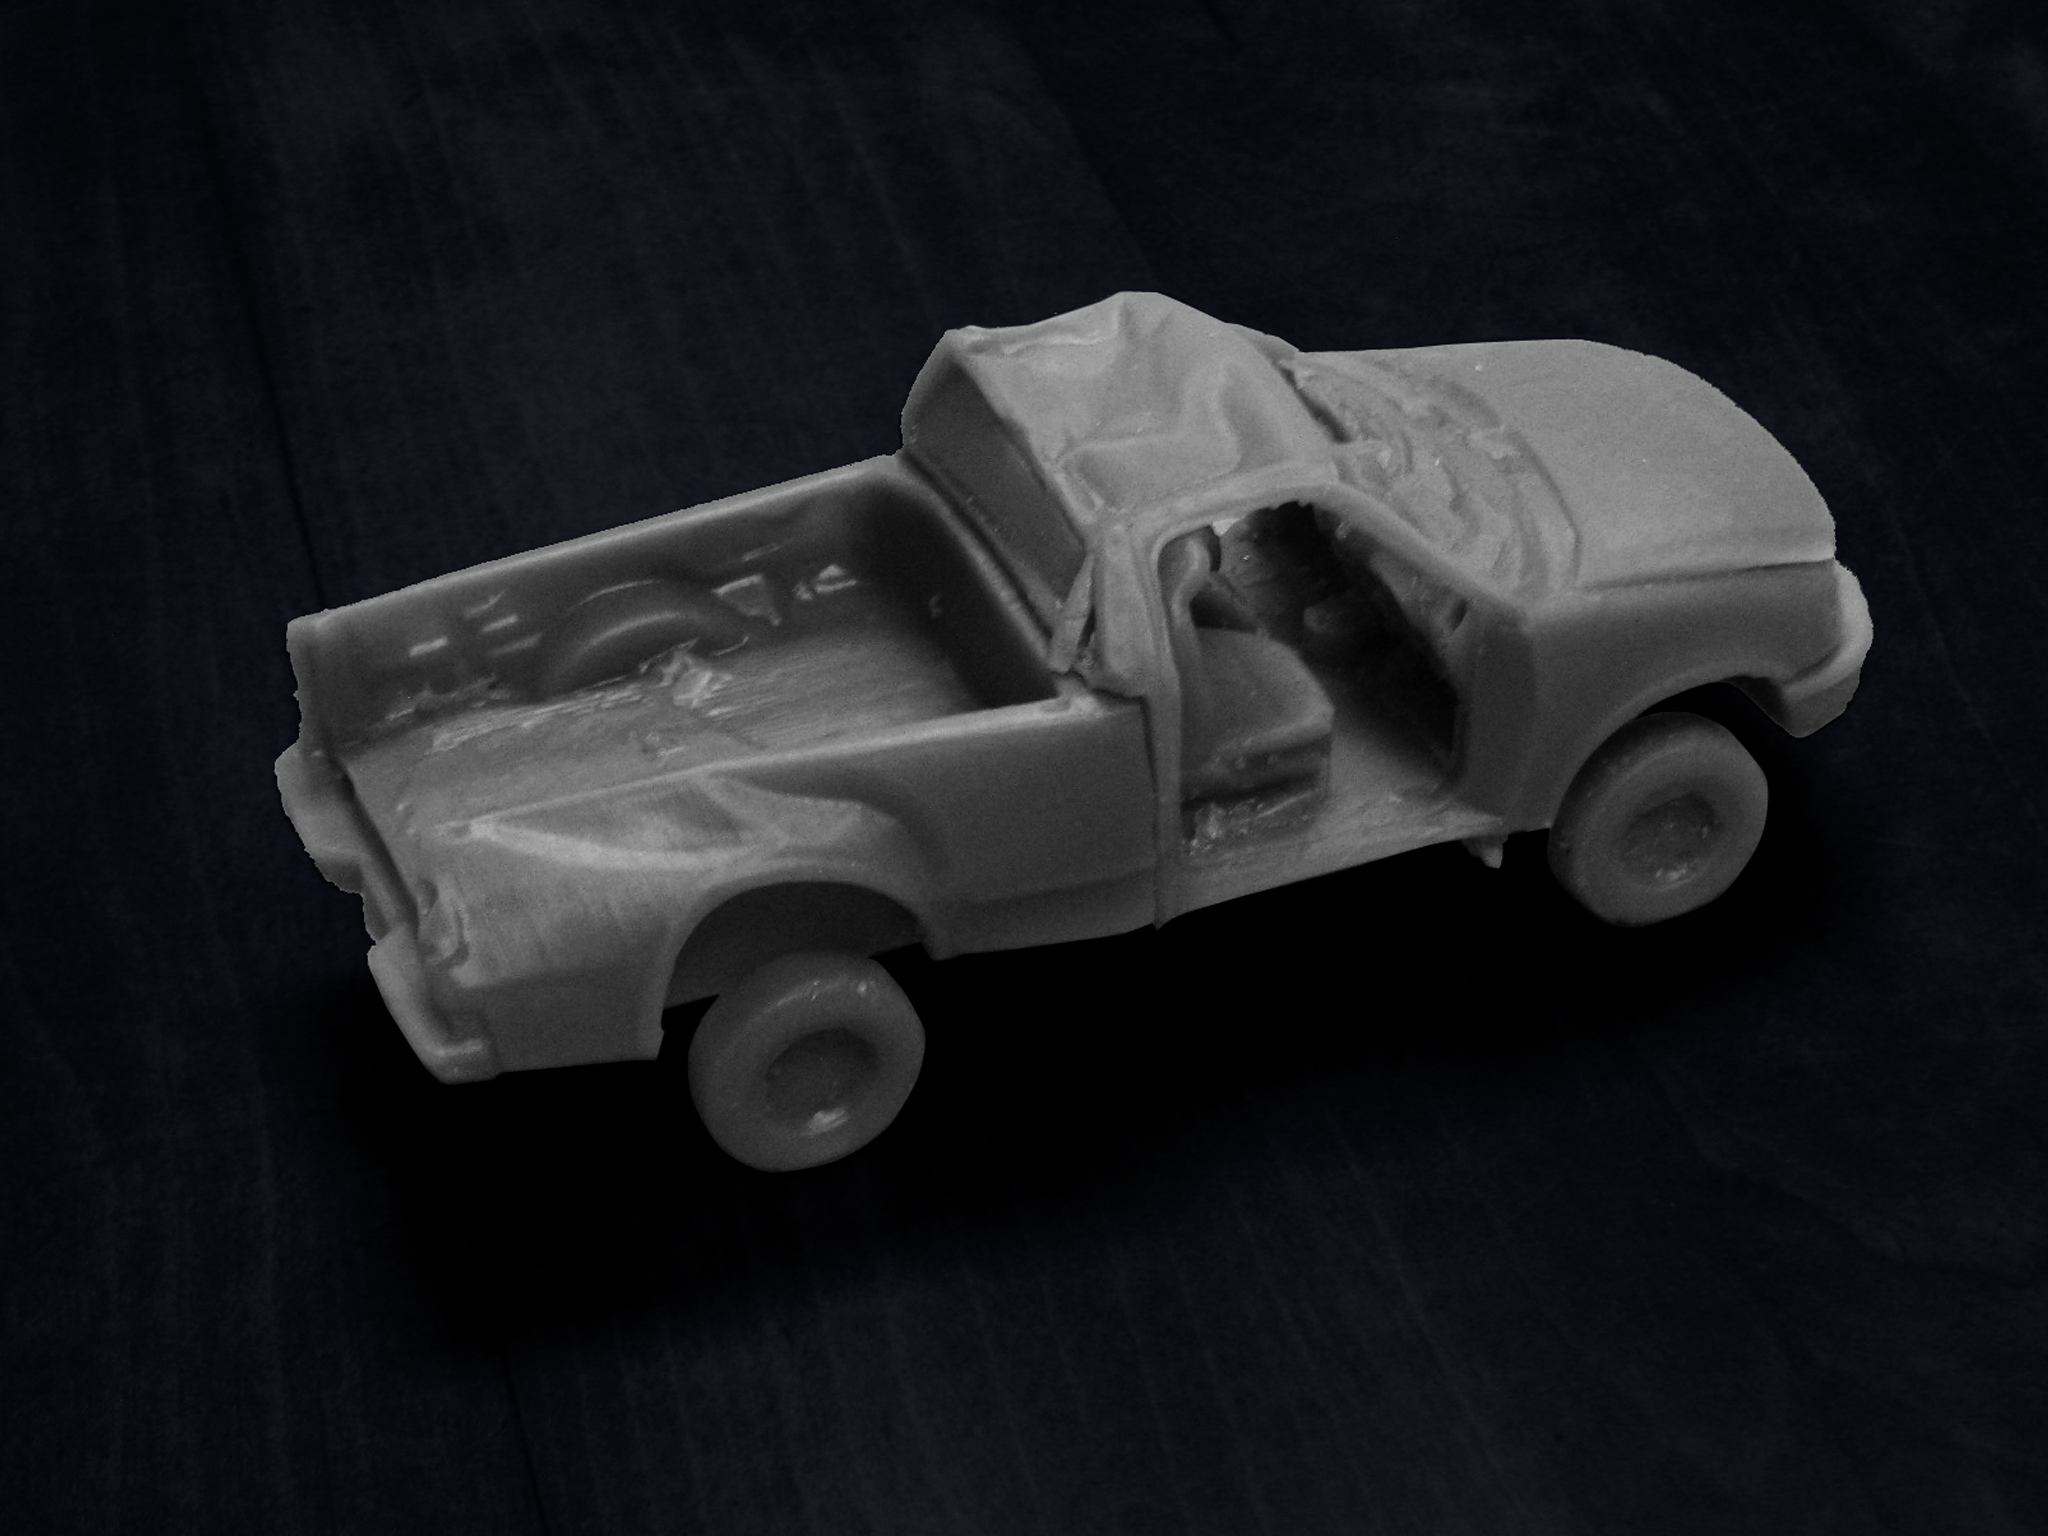 Subject Vehicle 3D Print F15 Pickup: This scale model was derived from the laser scan of a pickup truck that lost control and rolled over several times. It was used as a trial exhibit in court to show that if the doors had stayed intact during the accident the occupants may have survived their injuries.